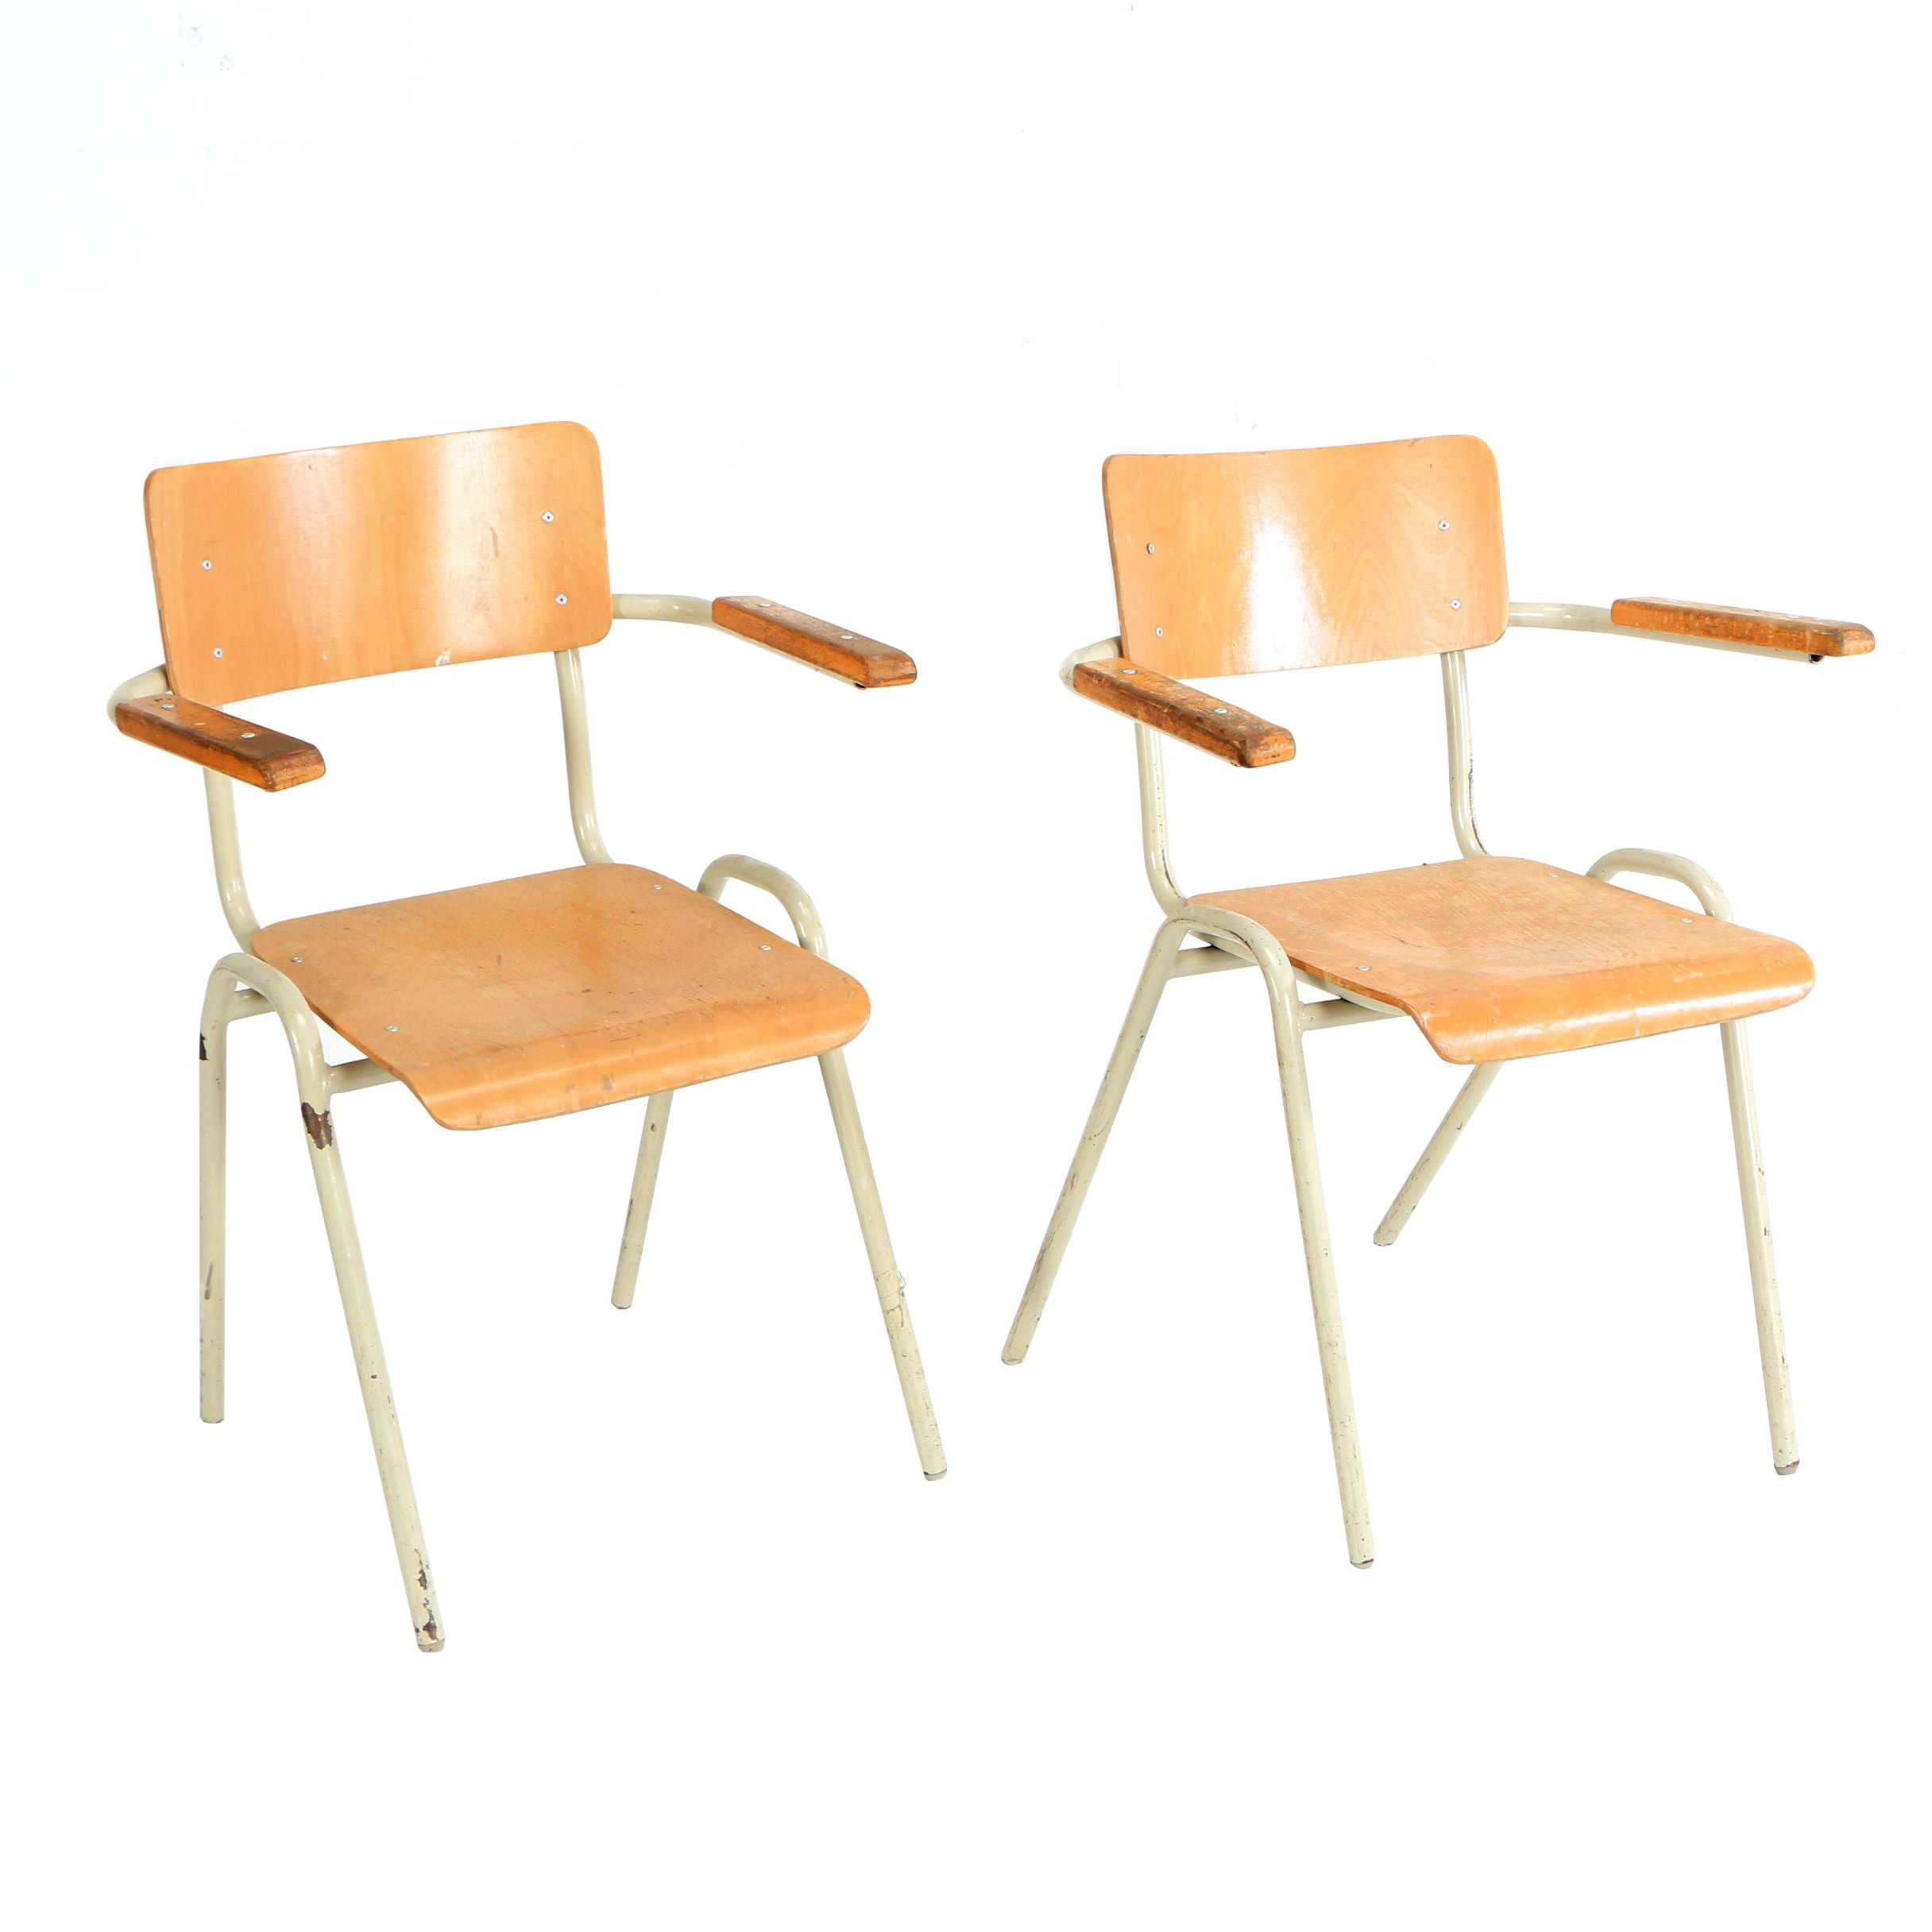 Mid Century Modern Bent Metal and Layered Plywood School Chairs, Mid-20th C.